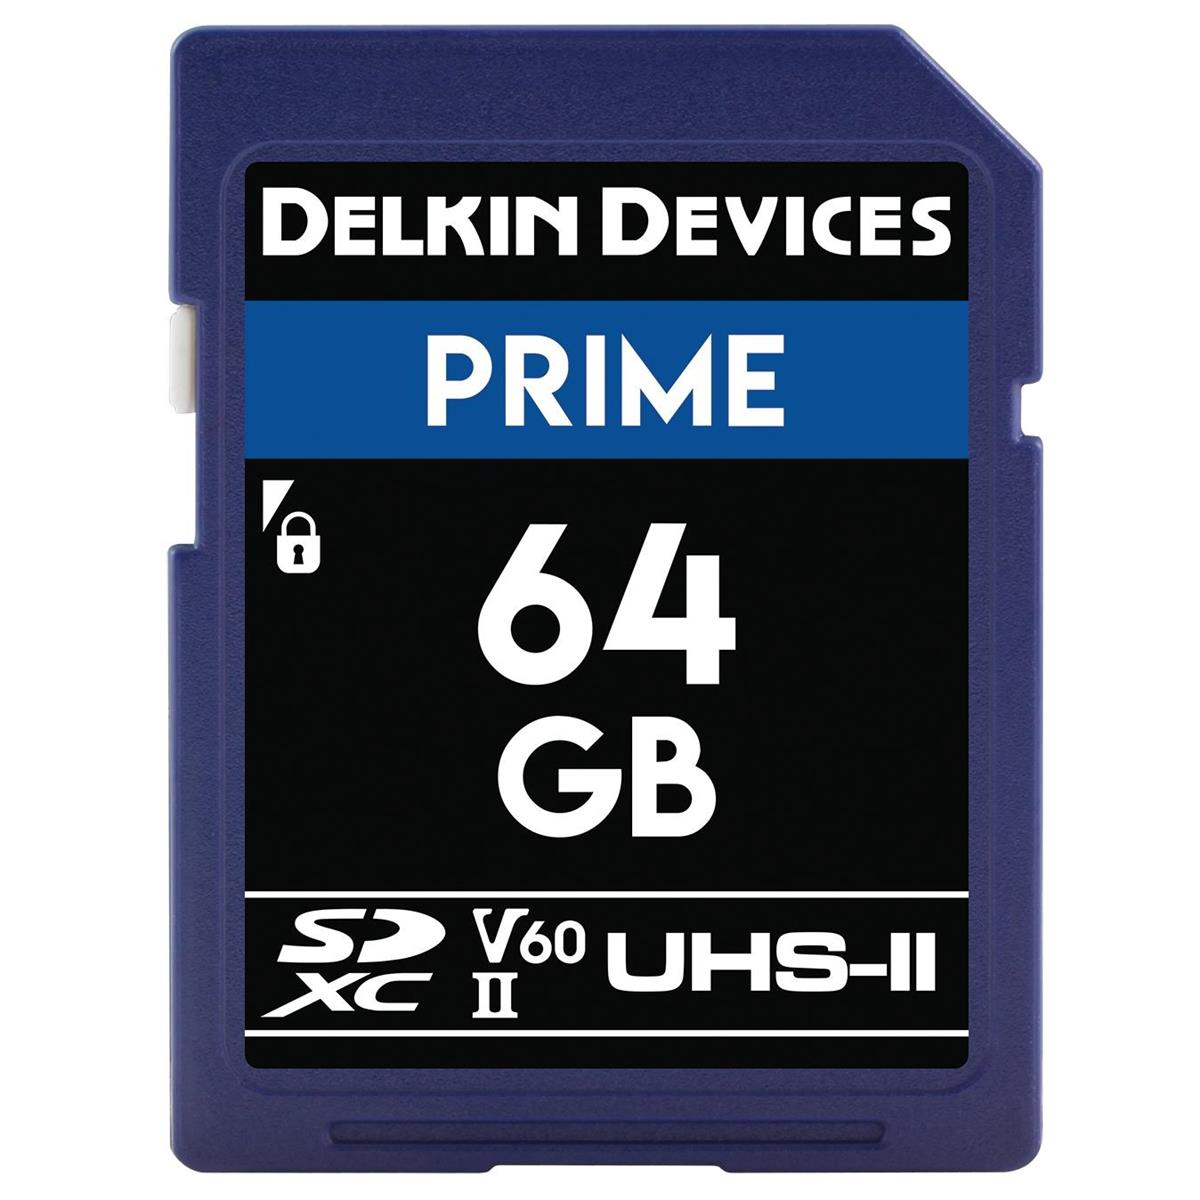 delkin devices prime image